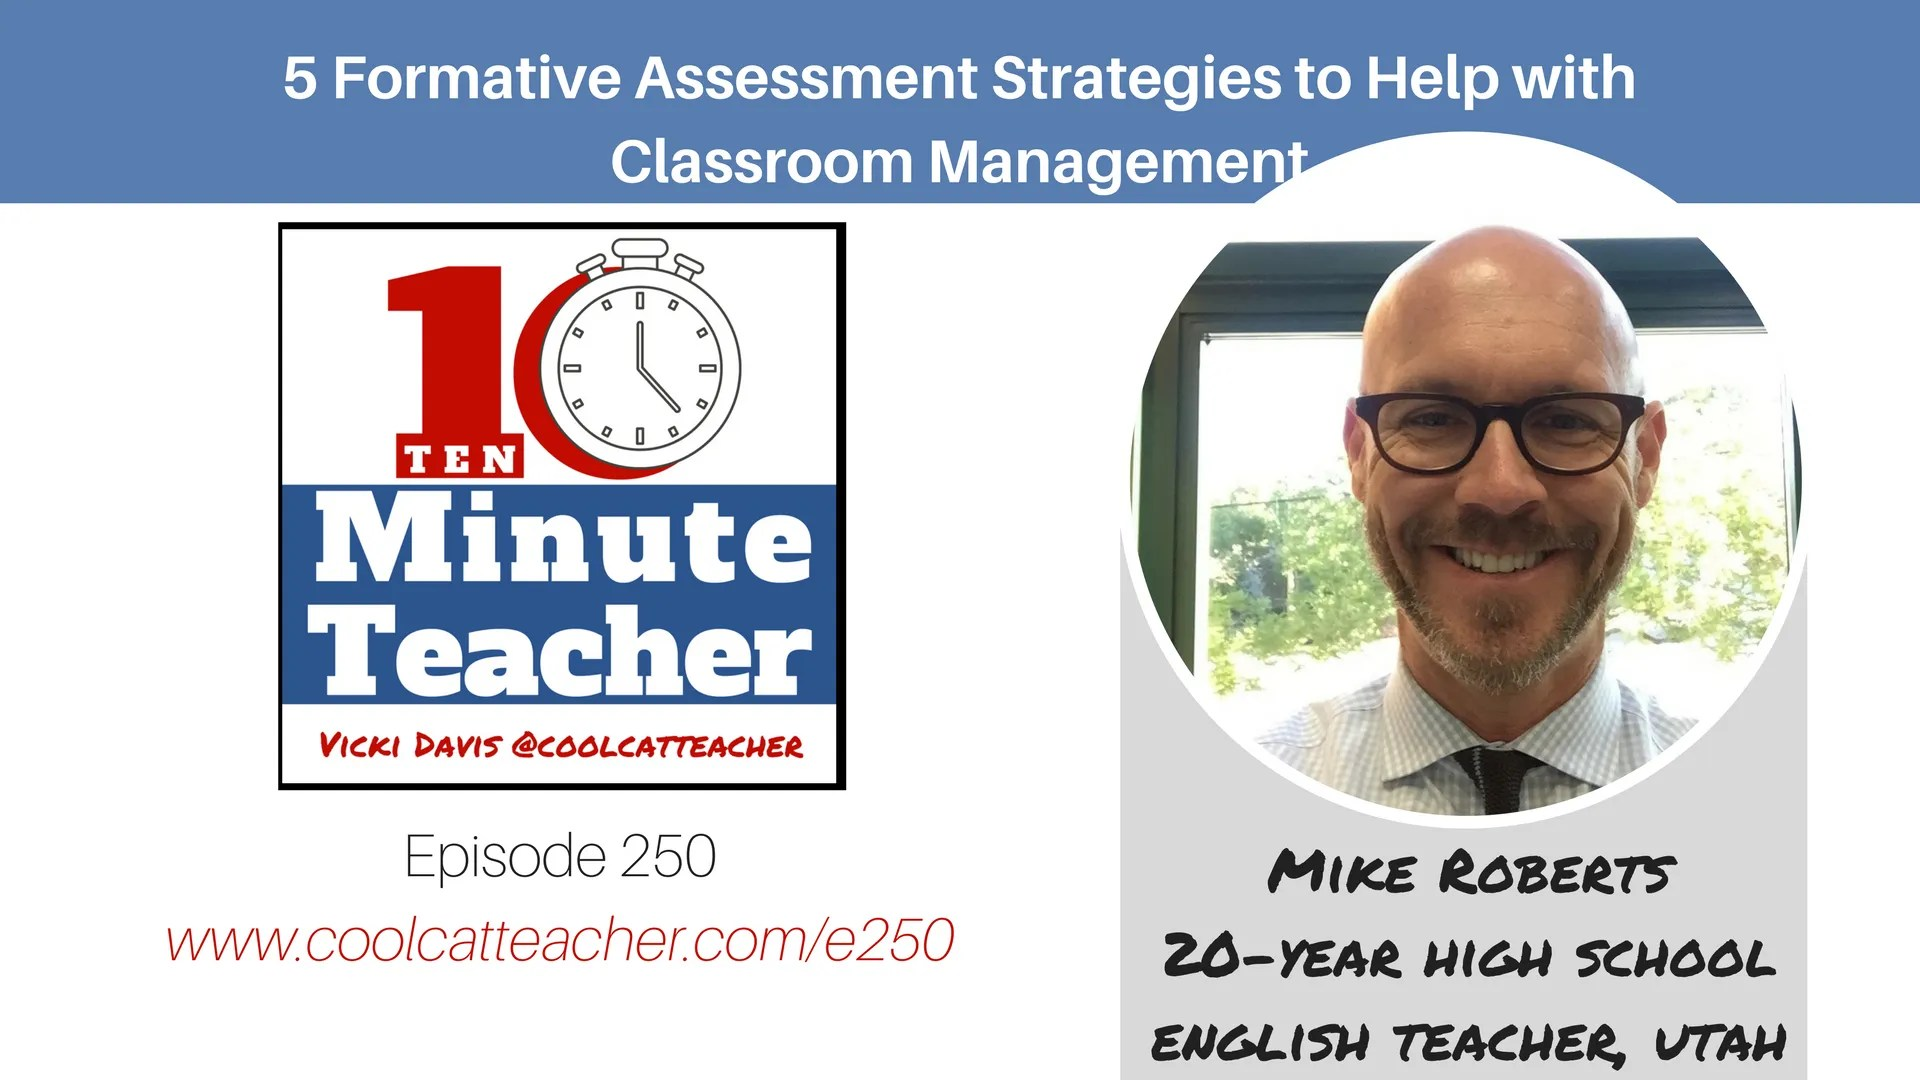 5 Formative Assessment Strategies To Help With Classroom Management Coolcatteacher